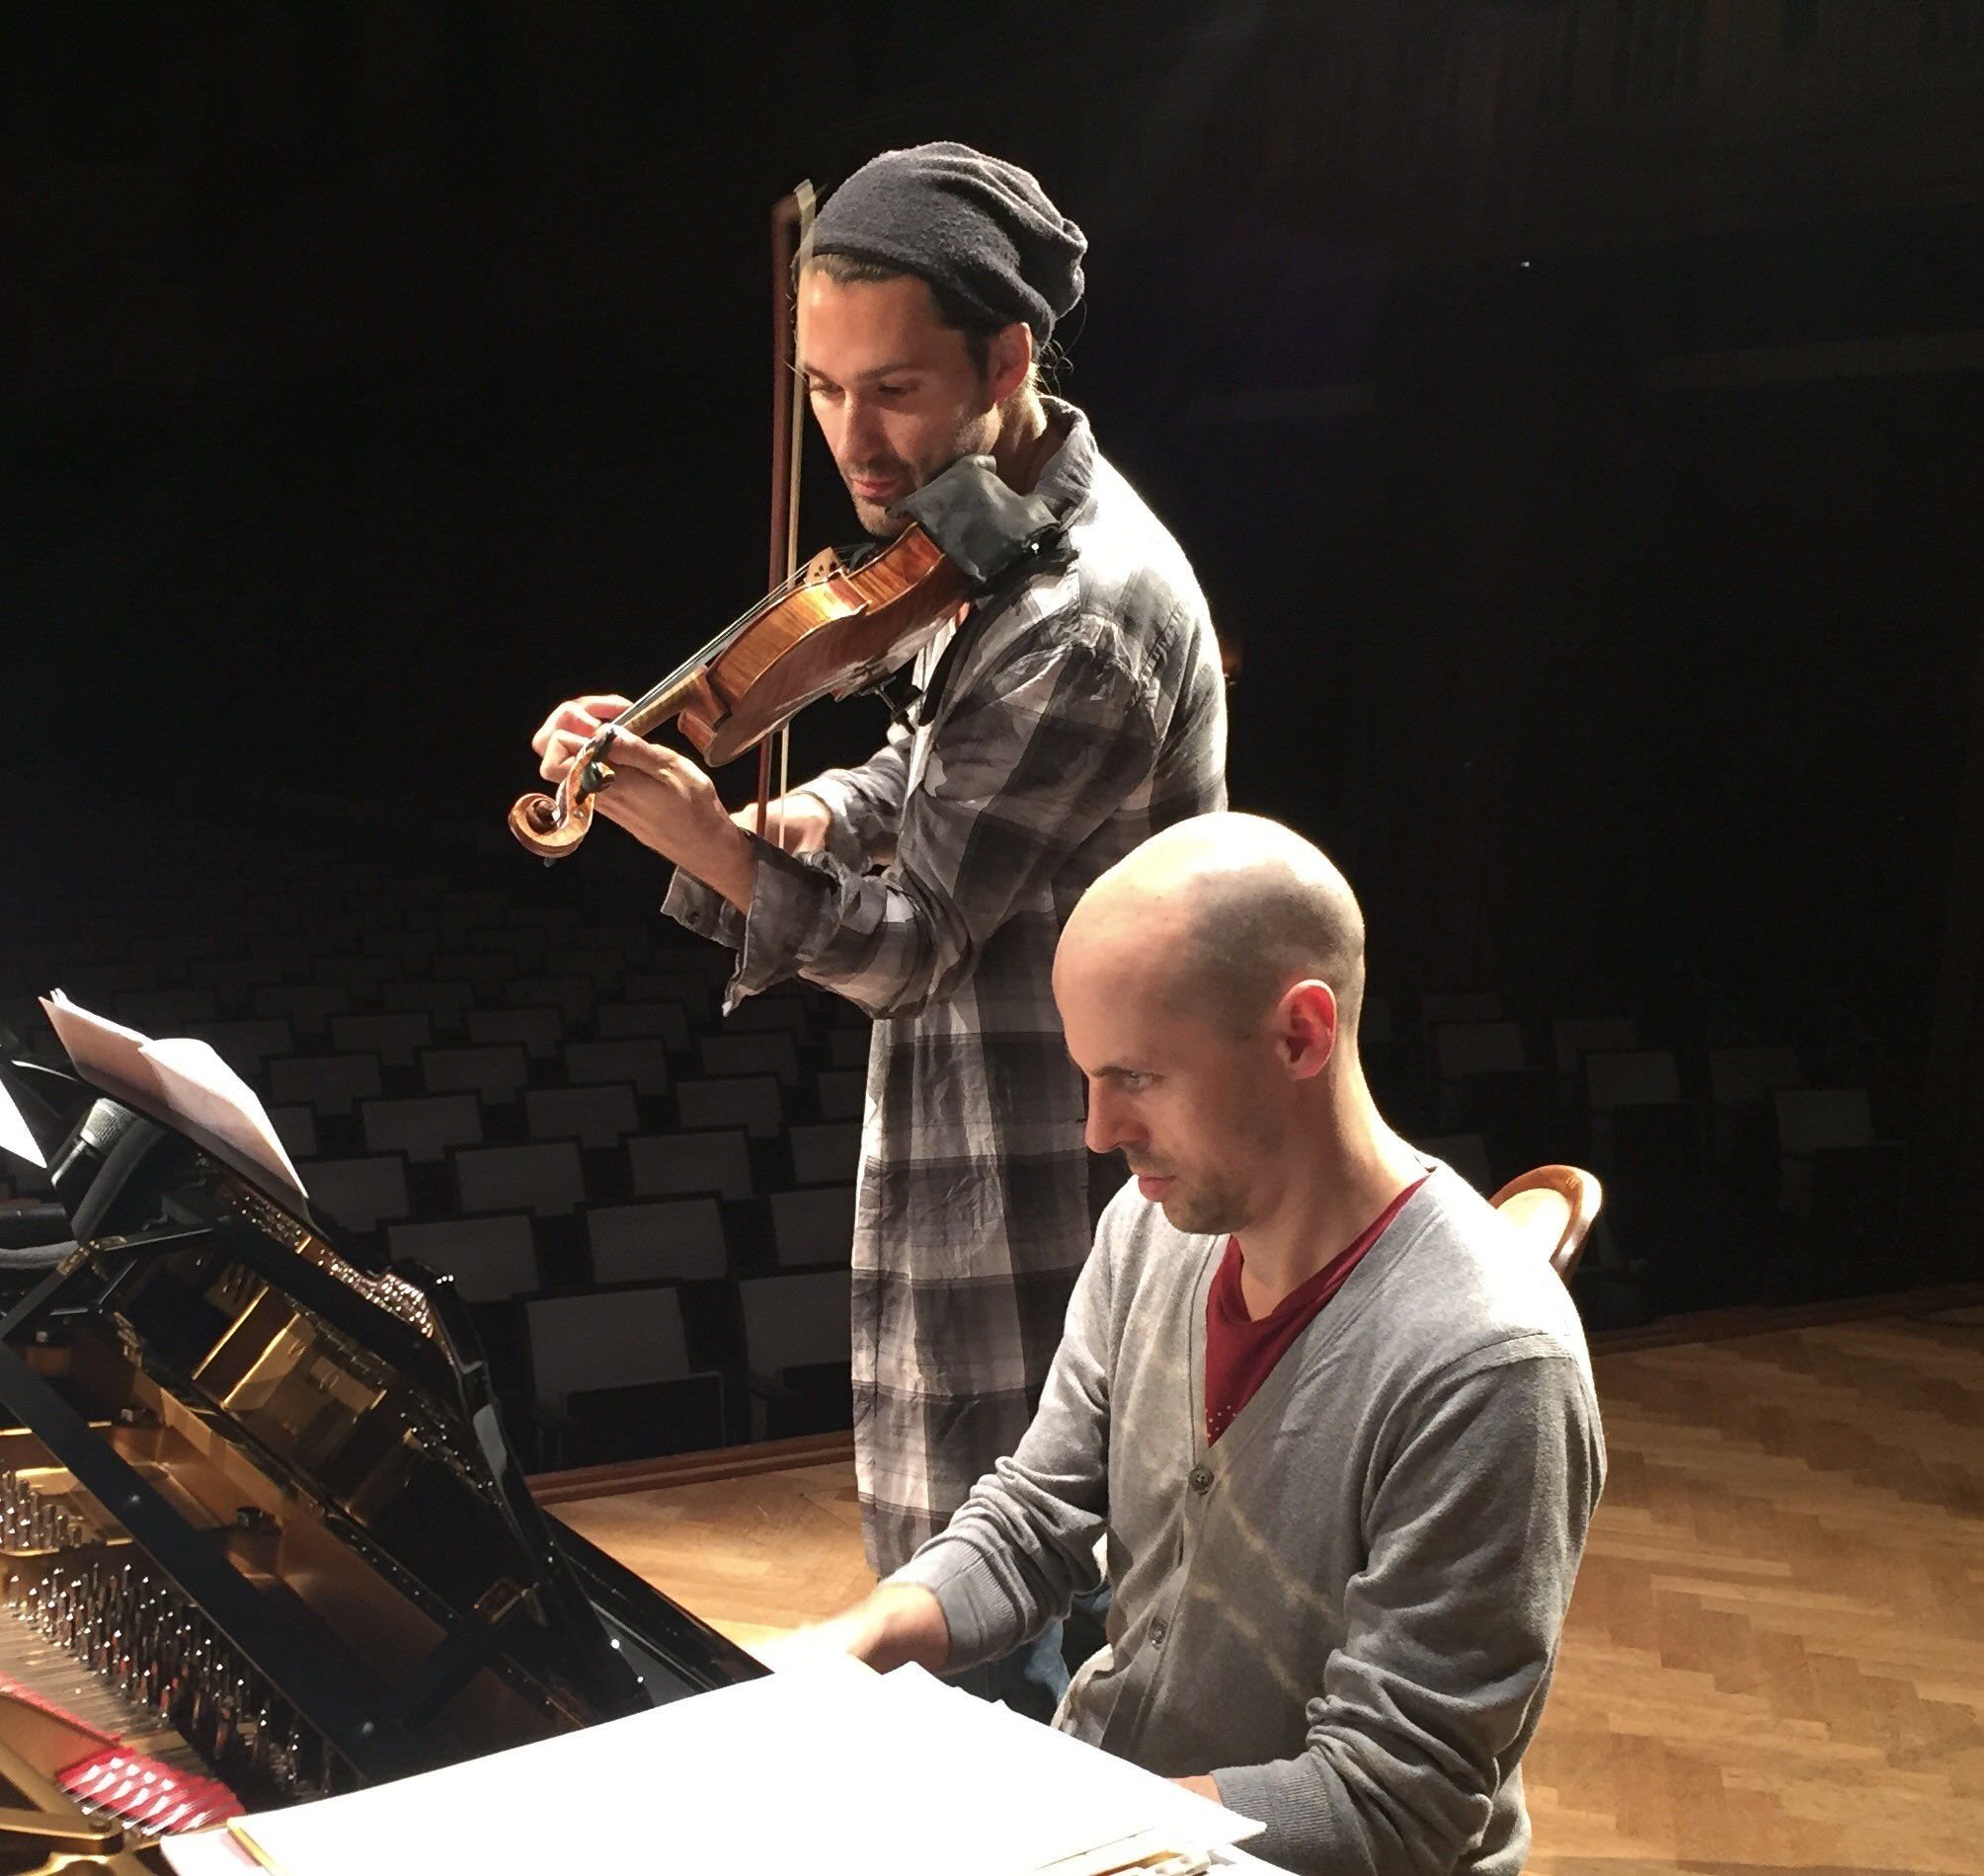 """David Garrett on Twitter: """"Rehearsal in Bad Kissingen with my friend and longtime pianist-partner @julienquentin https://t.co/cWPwTeaLBi"""""""